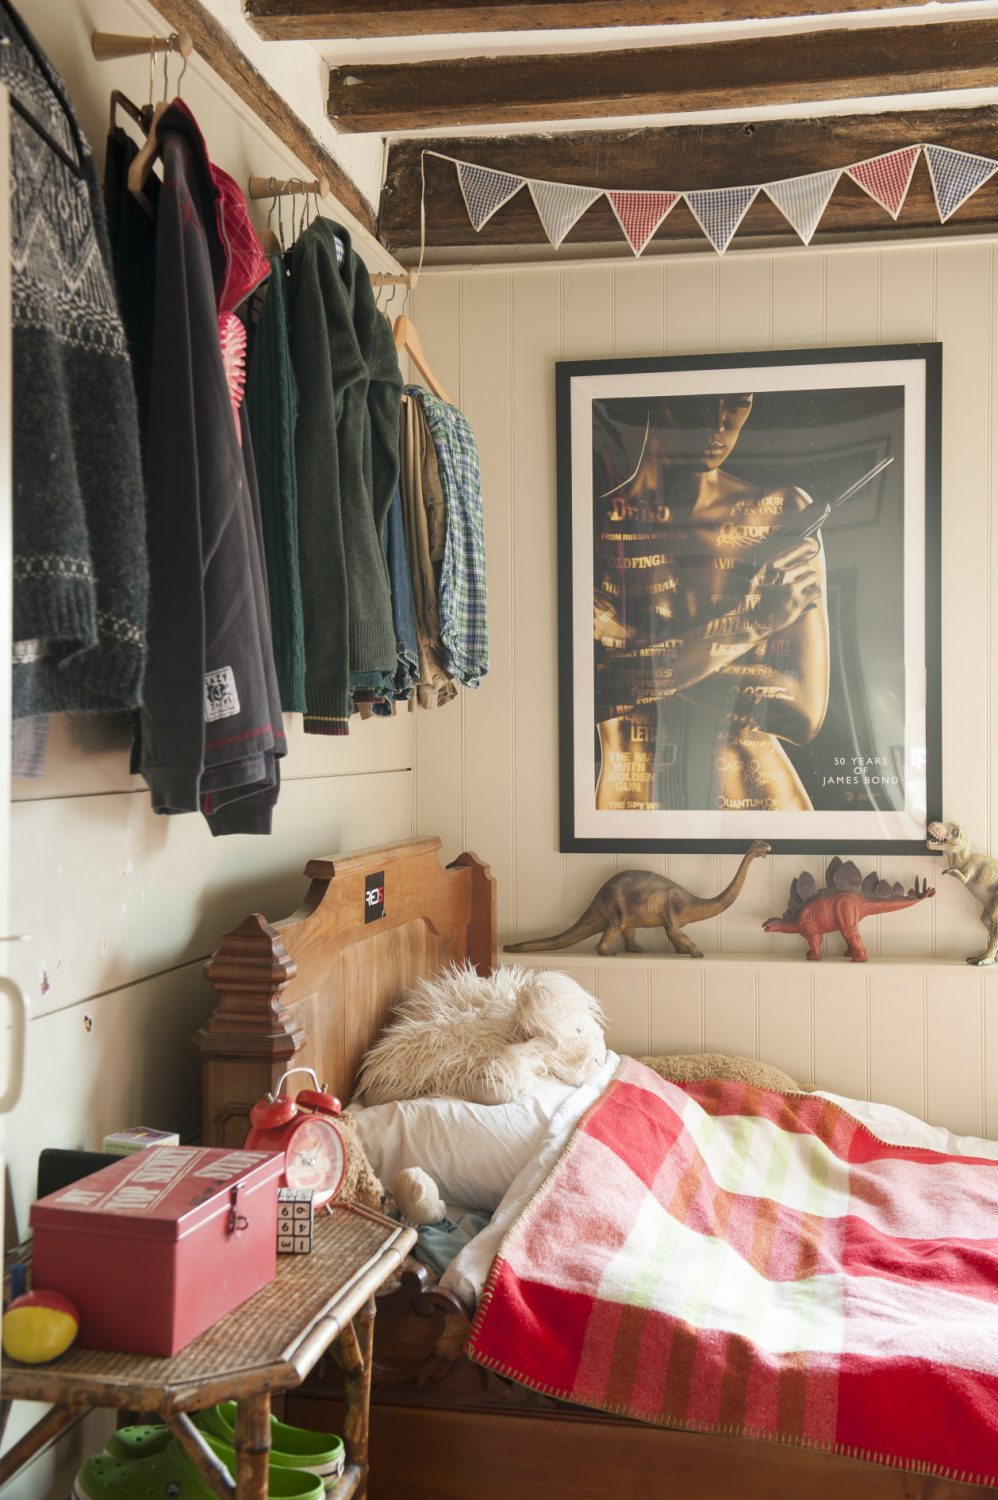 Ally has rationalised and organised each of her children's rooms with her own distinctive design techniques – including more chalet-style horizontal boards and clever storage spaces – while allowing the children's own taste and style to shine through